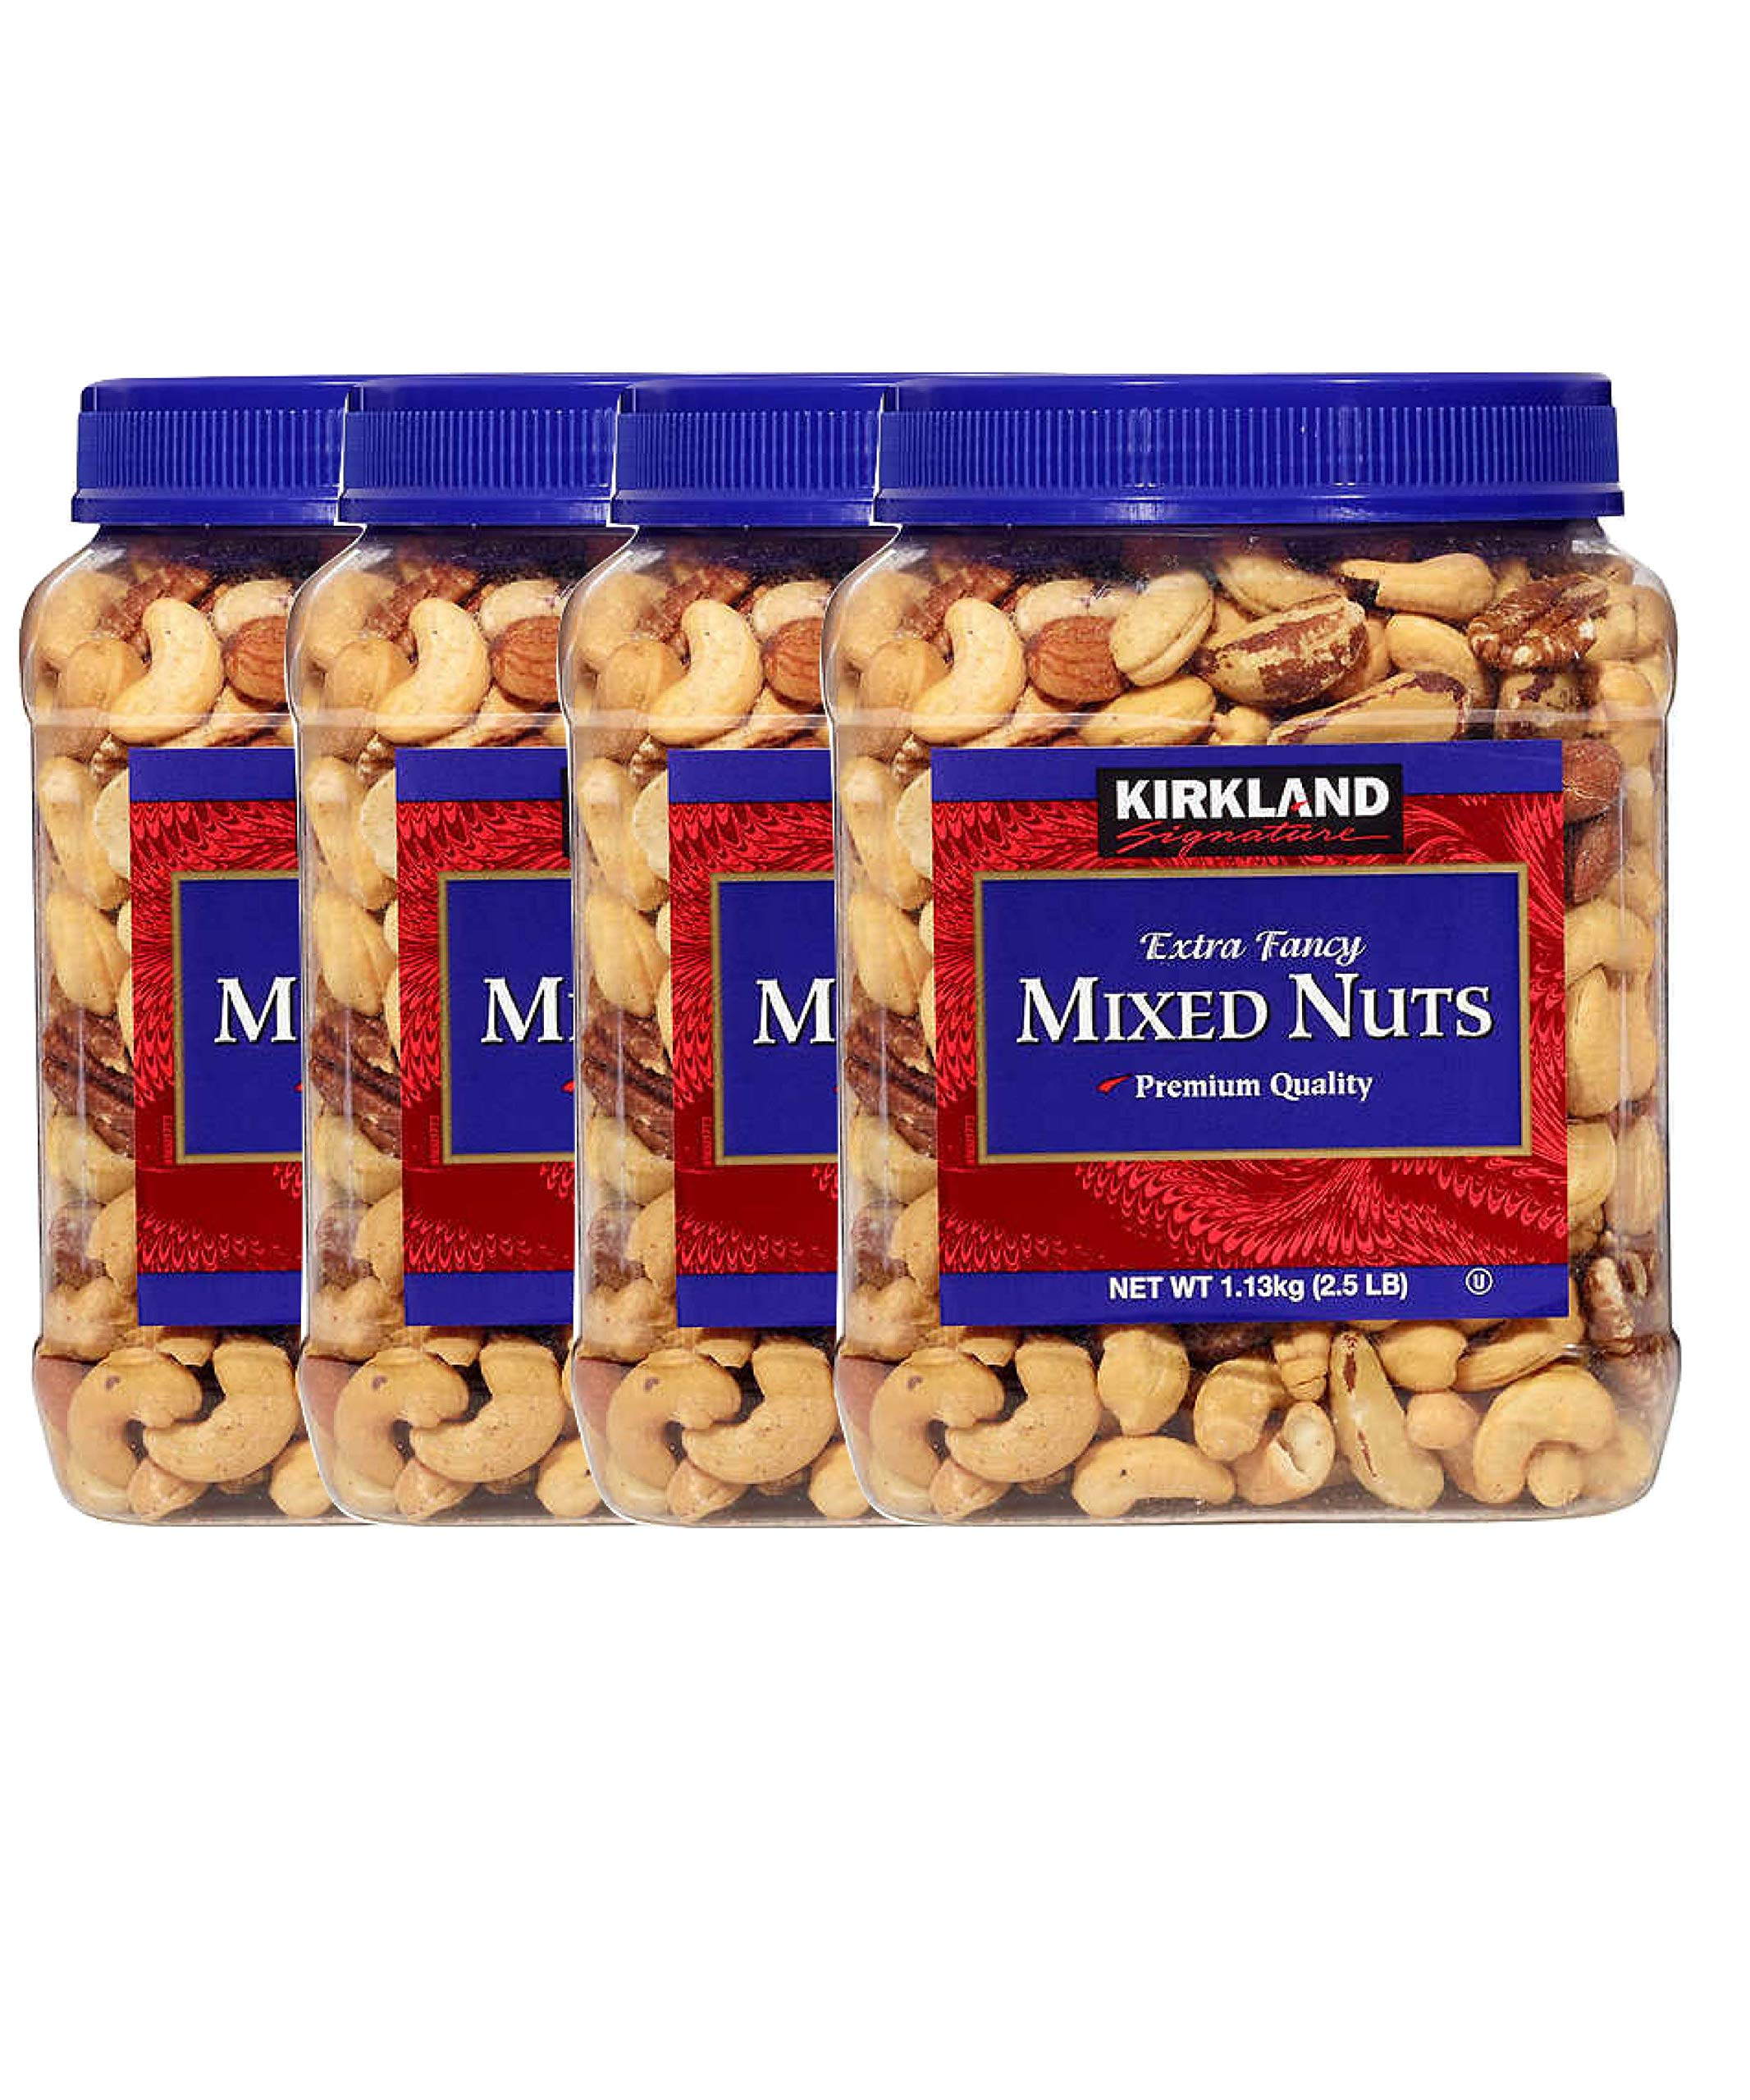 Kirkland Signature Extra Fancy Mixed Nuts, Salted and Shelled 40 oz (Pack of 4)